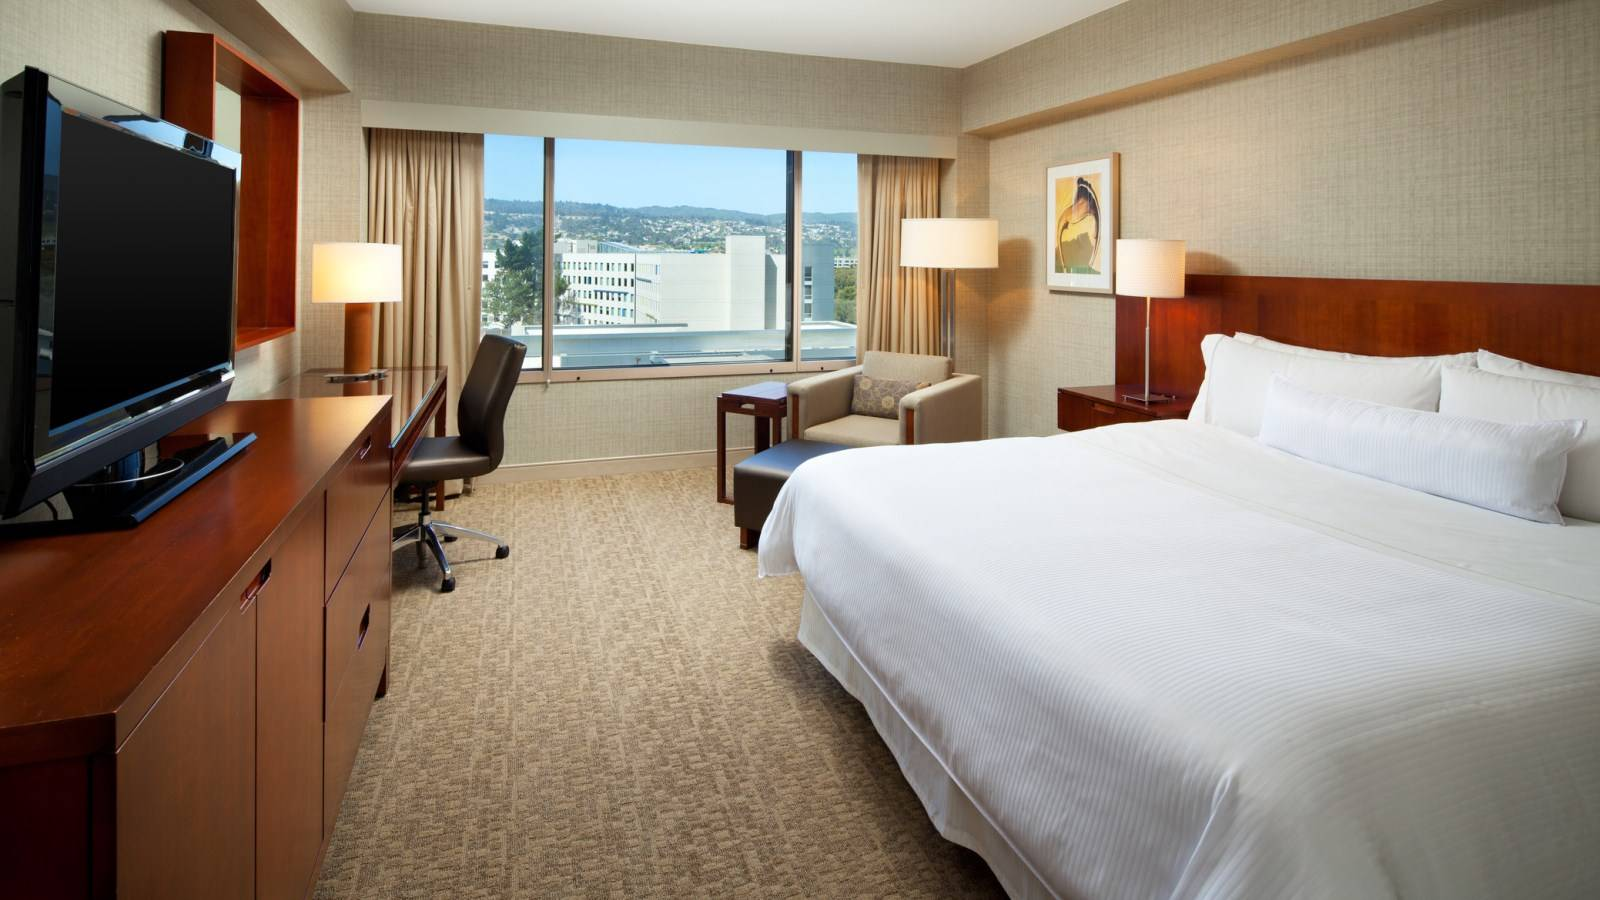 Room Features at The Westin San Francisco Airport Hotel